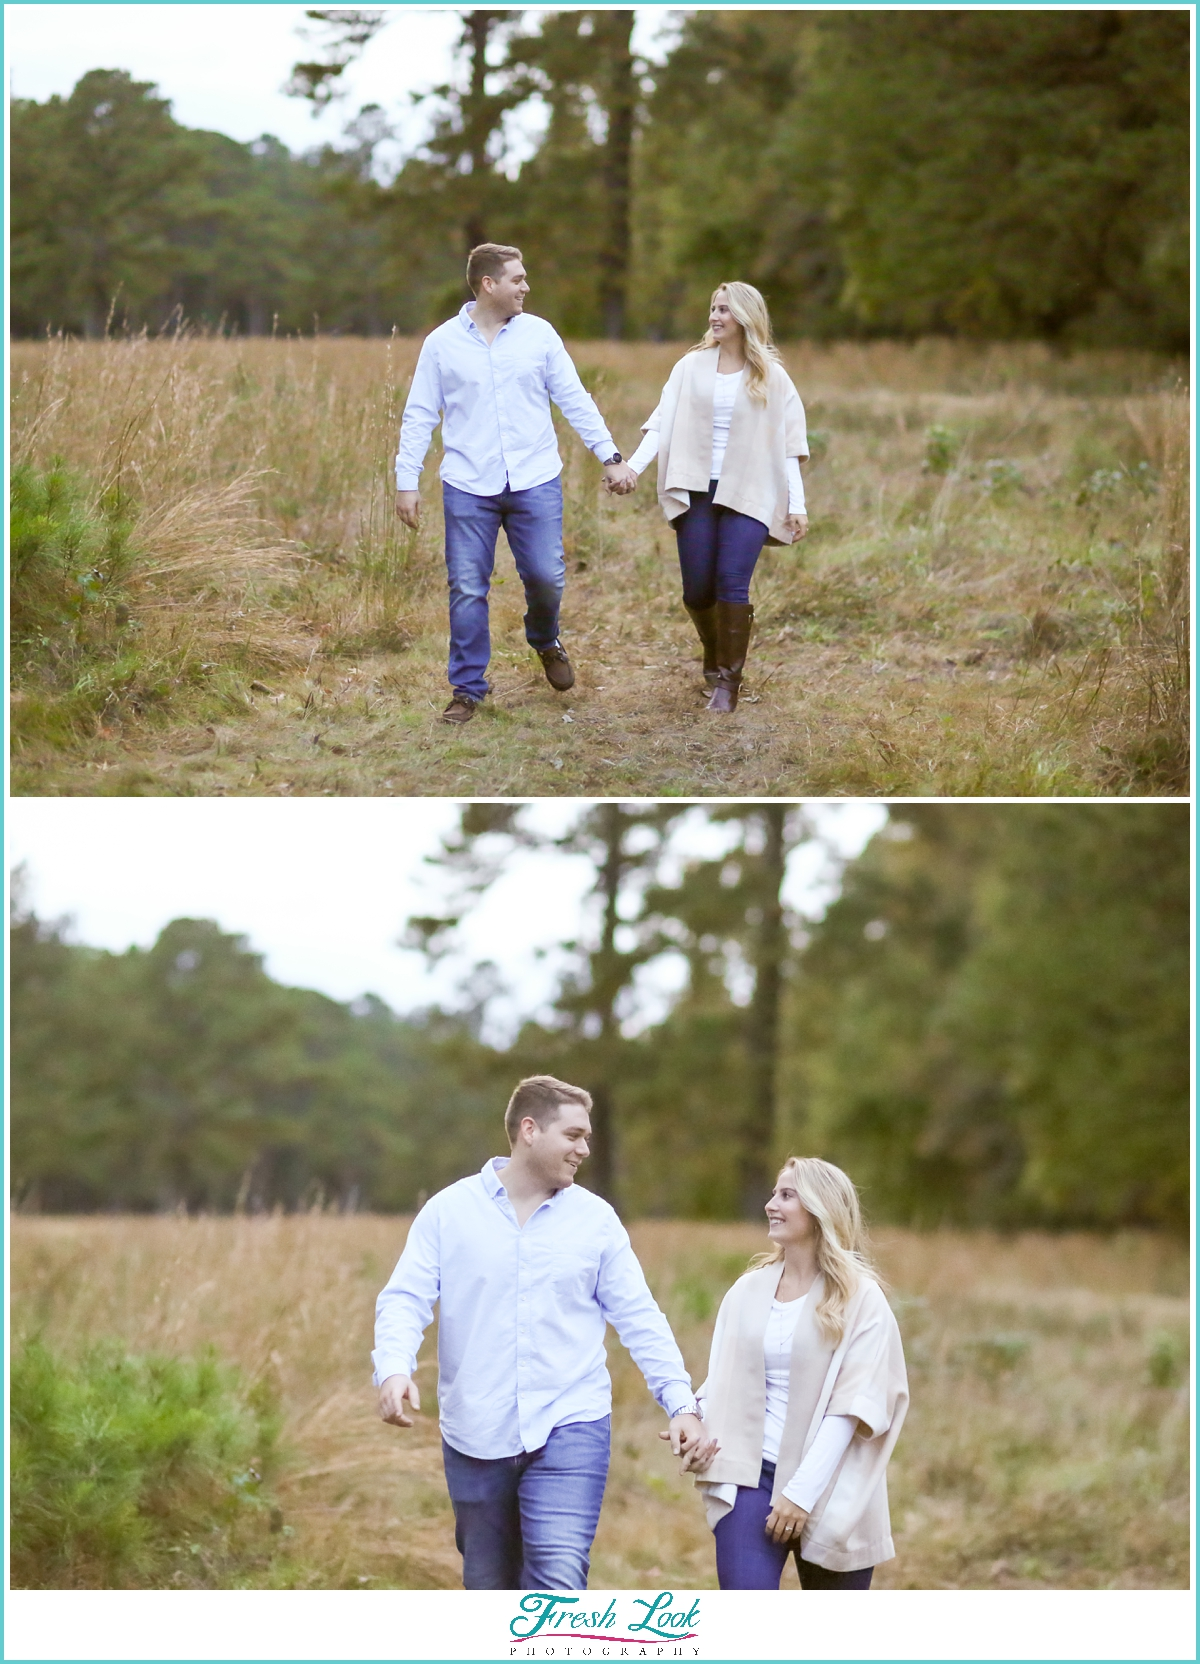 walking hand in hand during engagement session